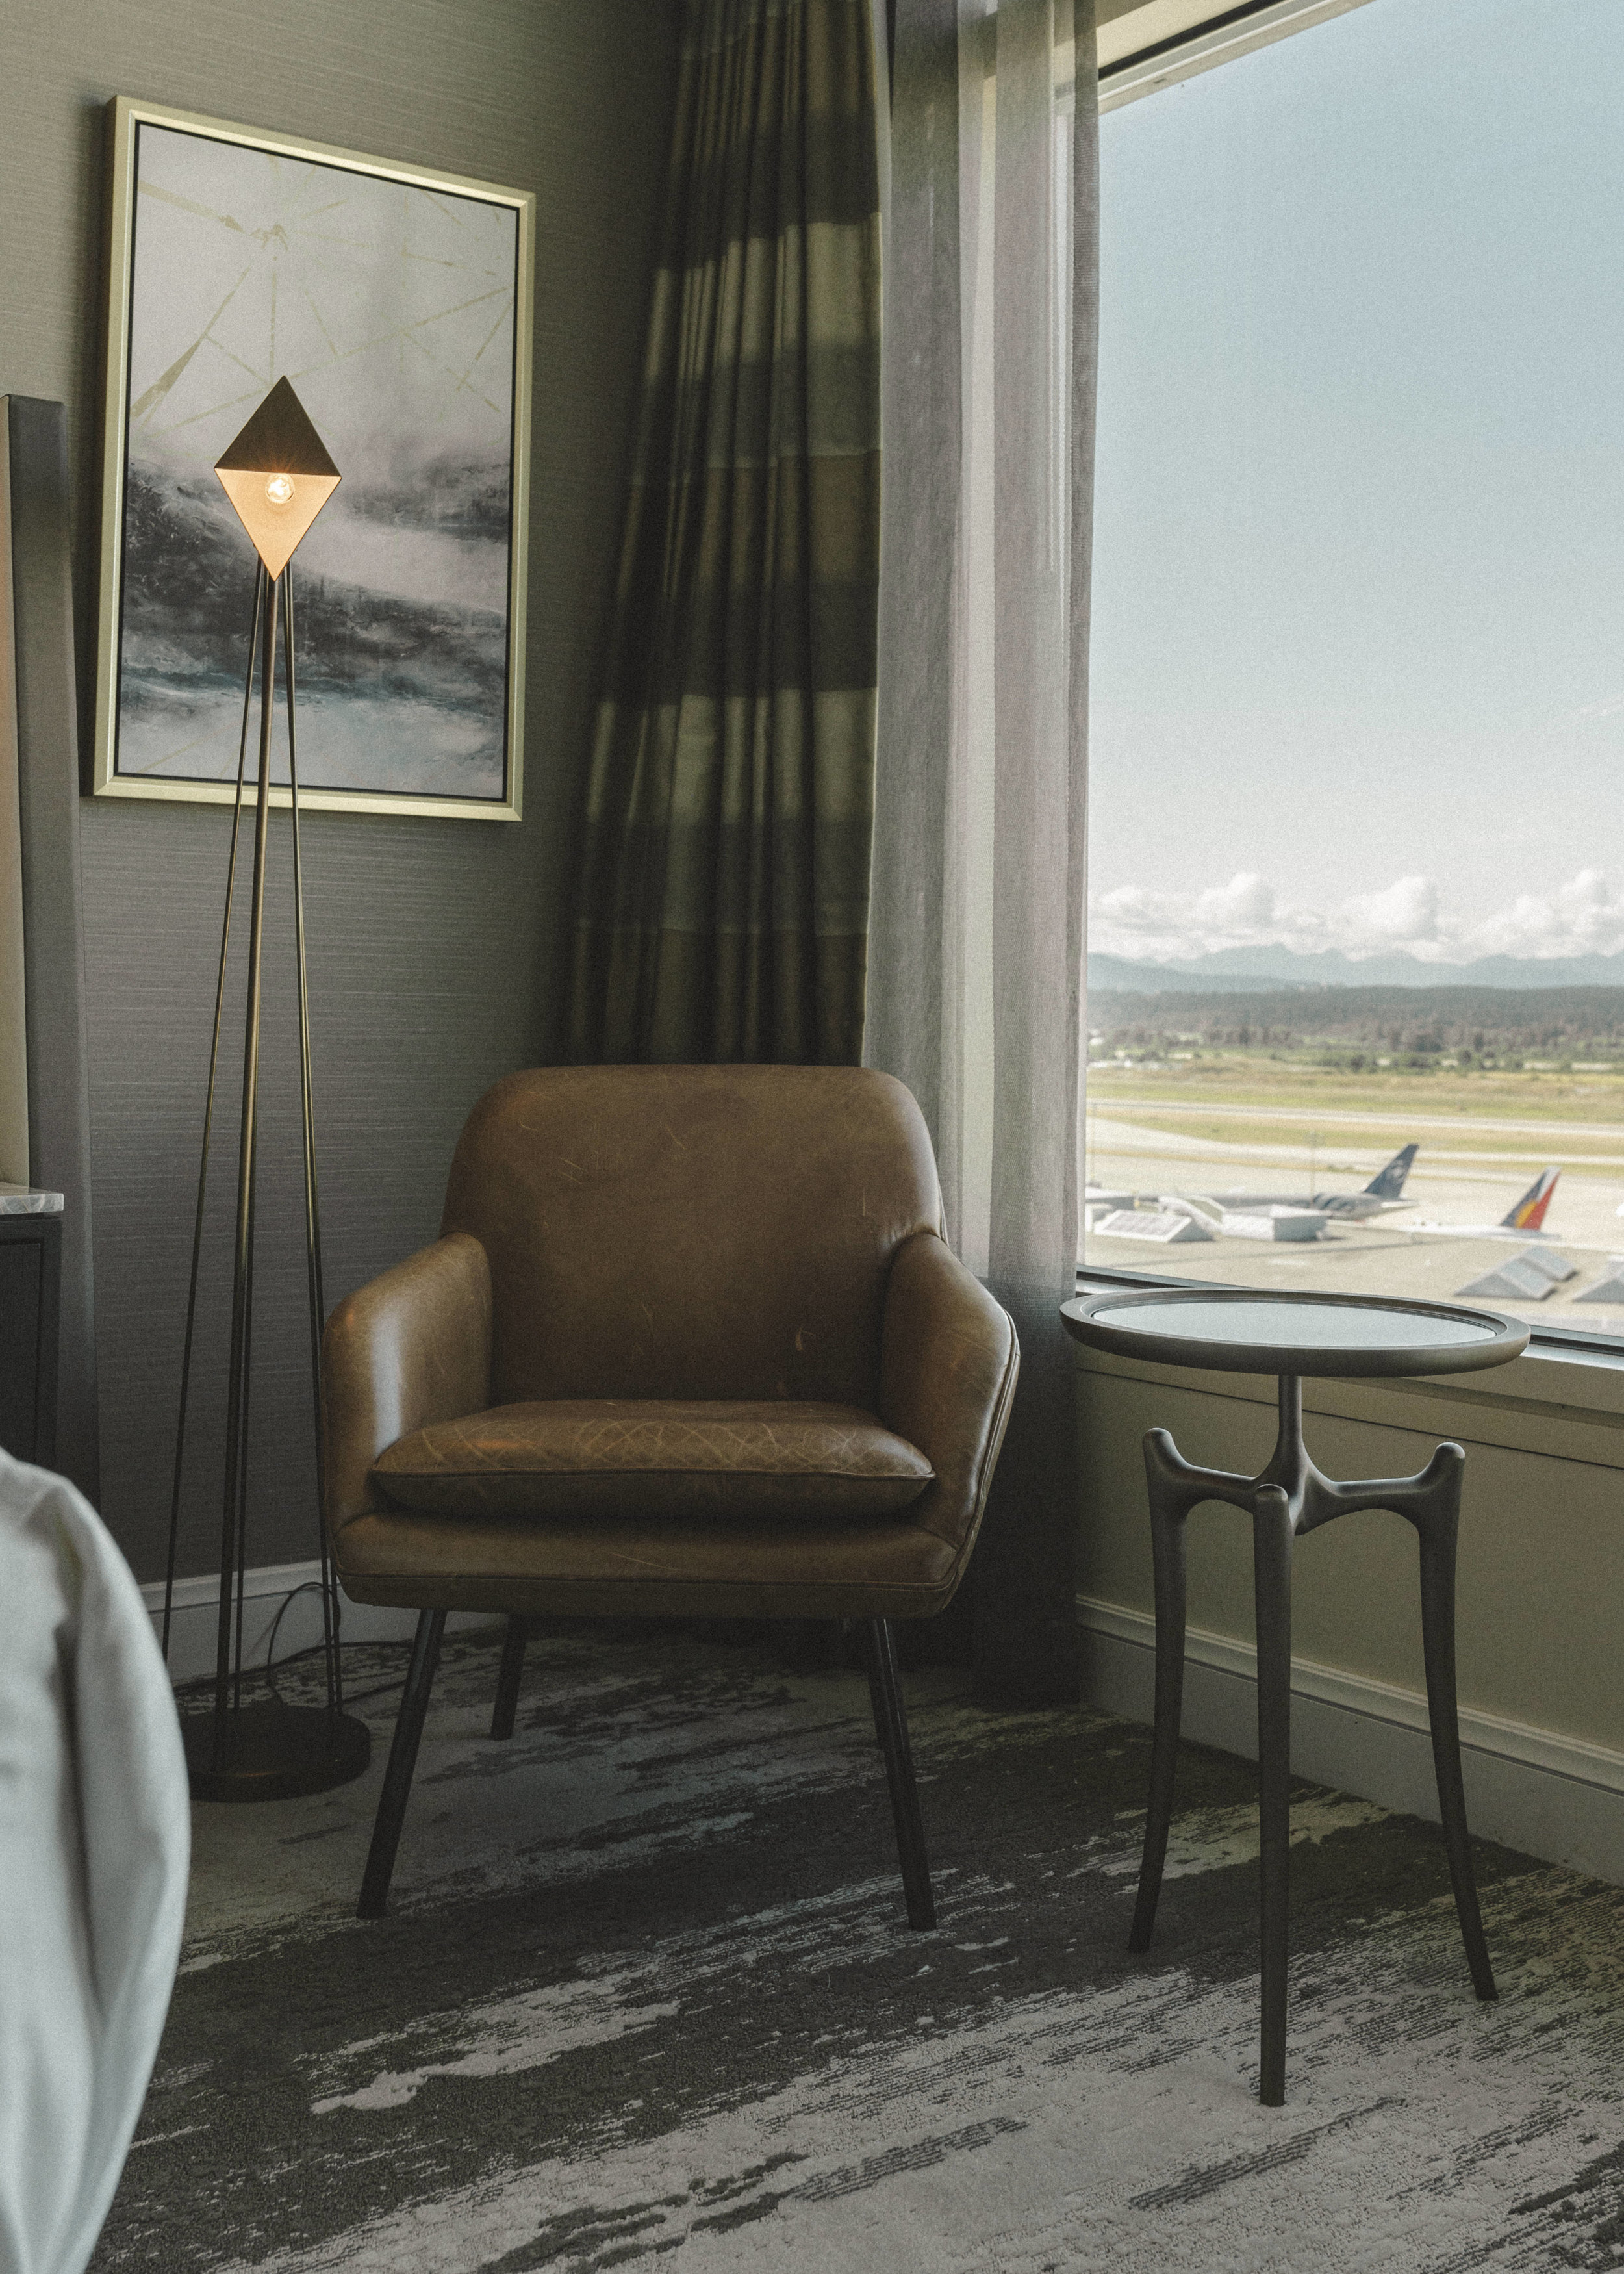 fairmont-vancouver-airport-hotel-by-lisa-linh